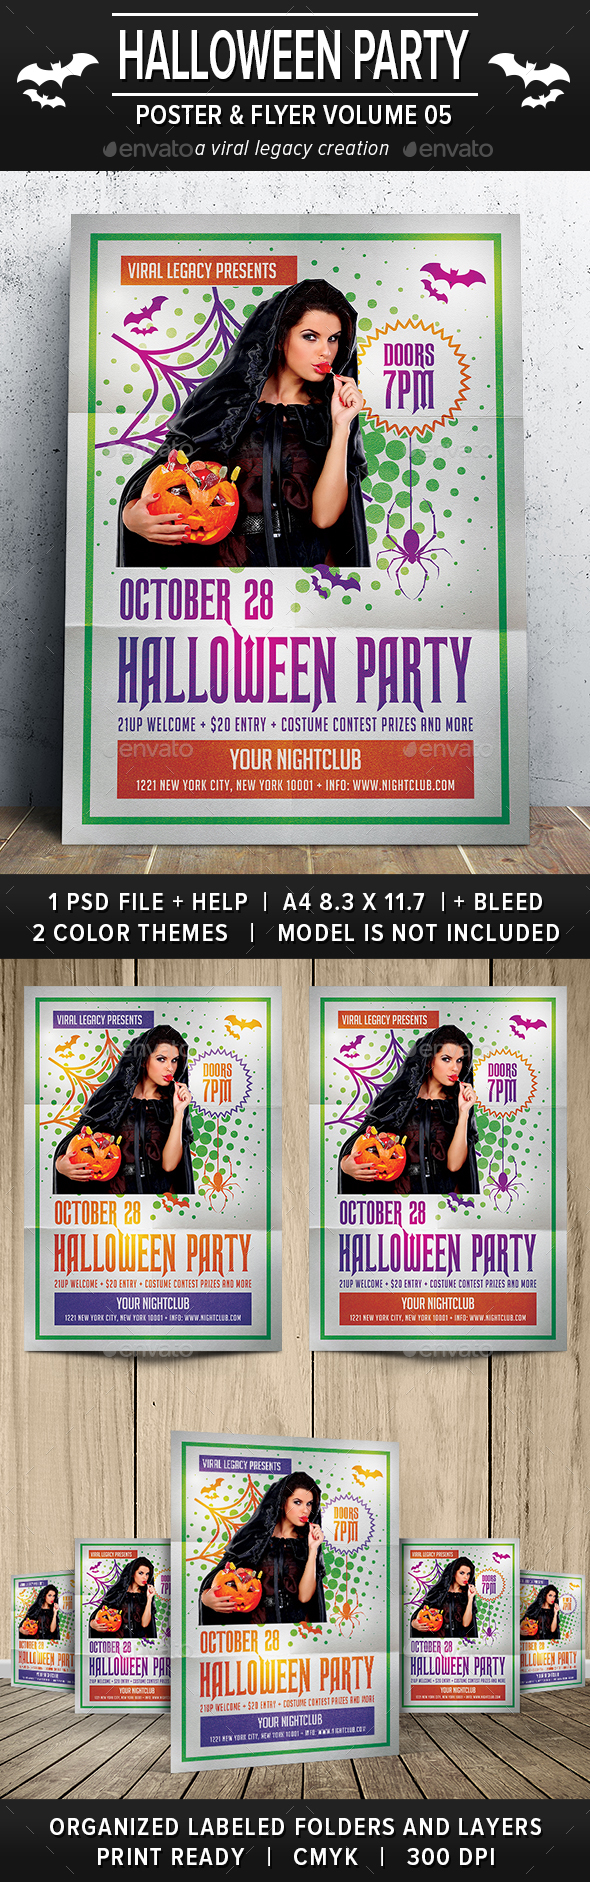 Halloween Party Poster / Flyer V05